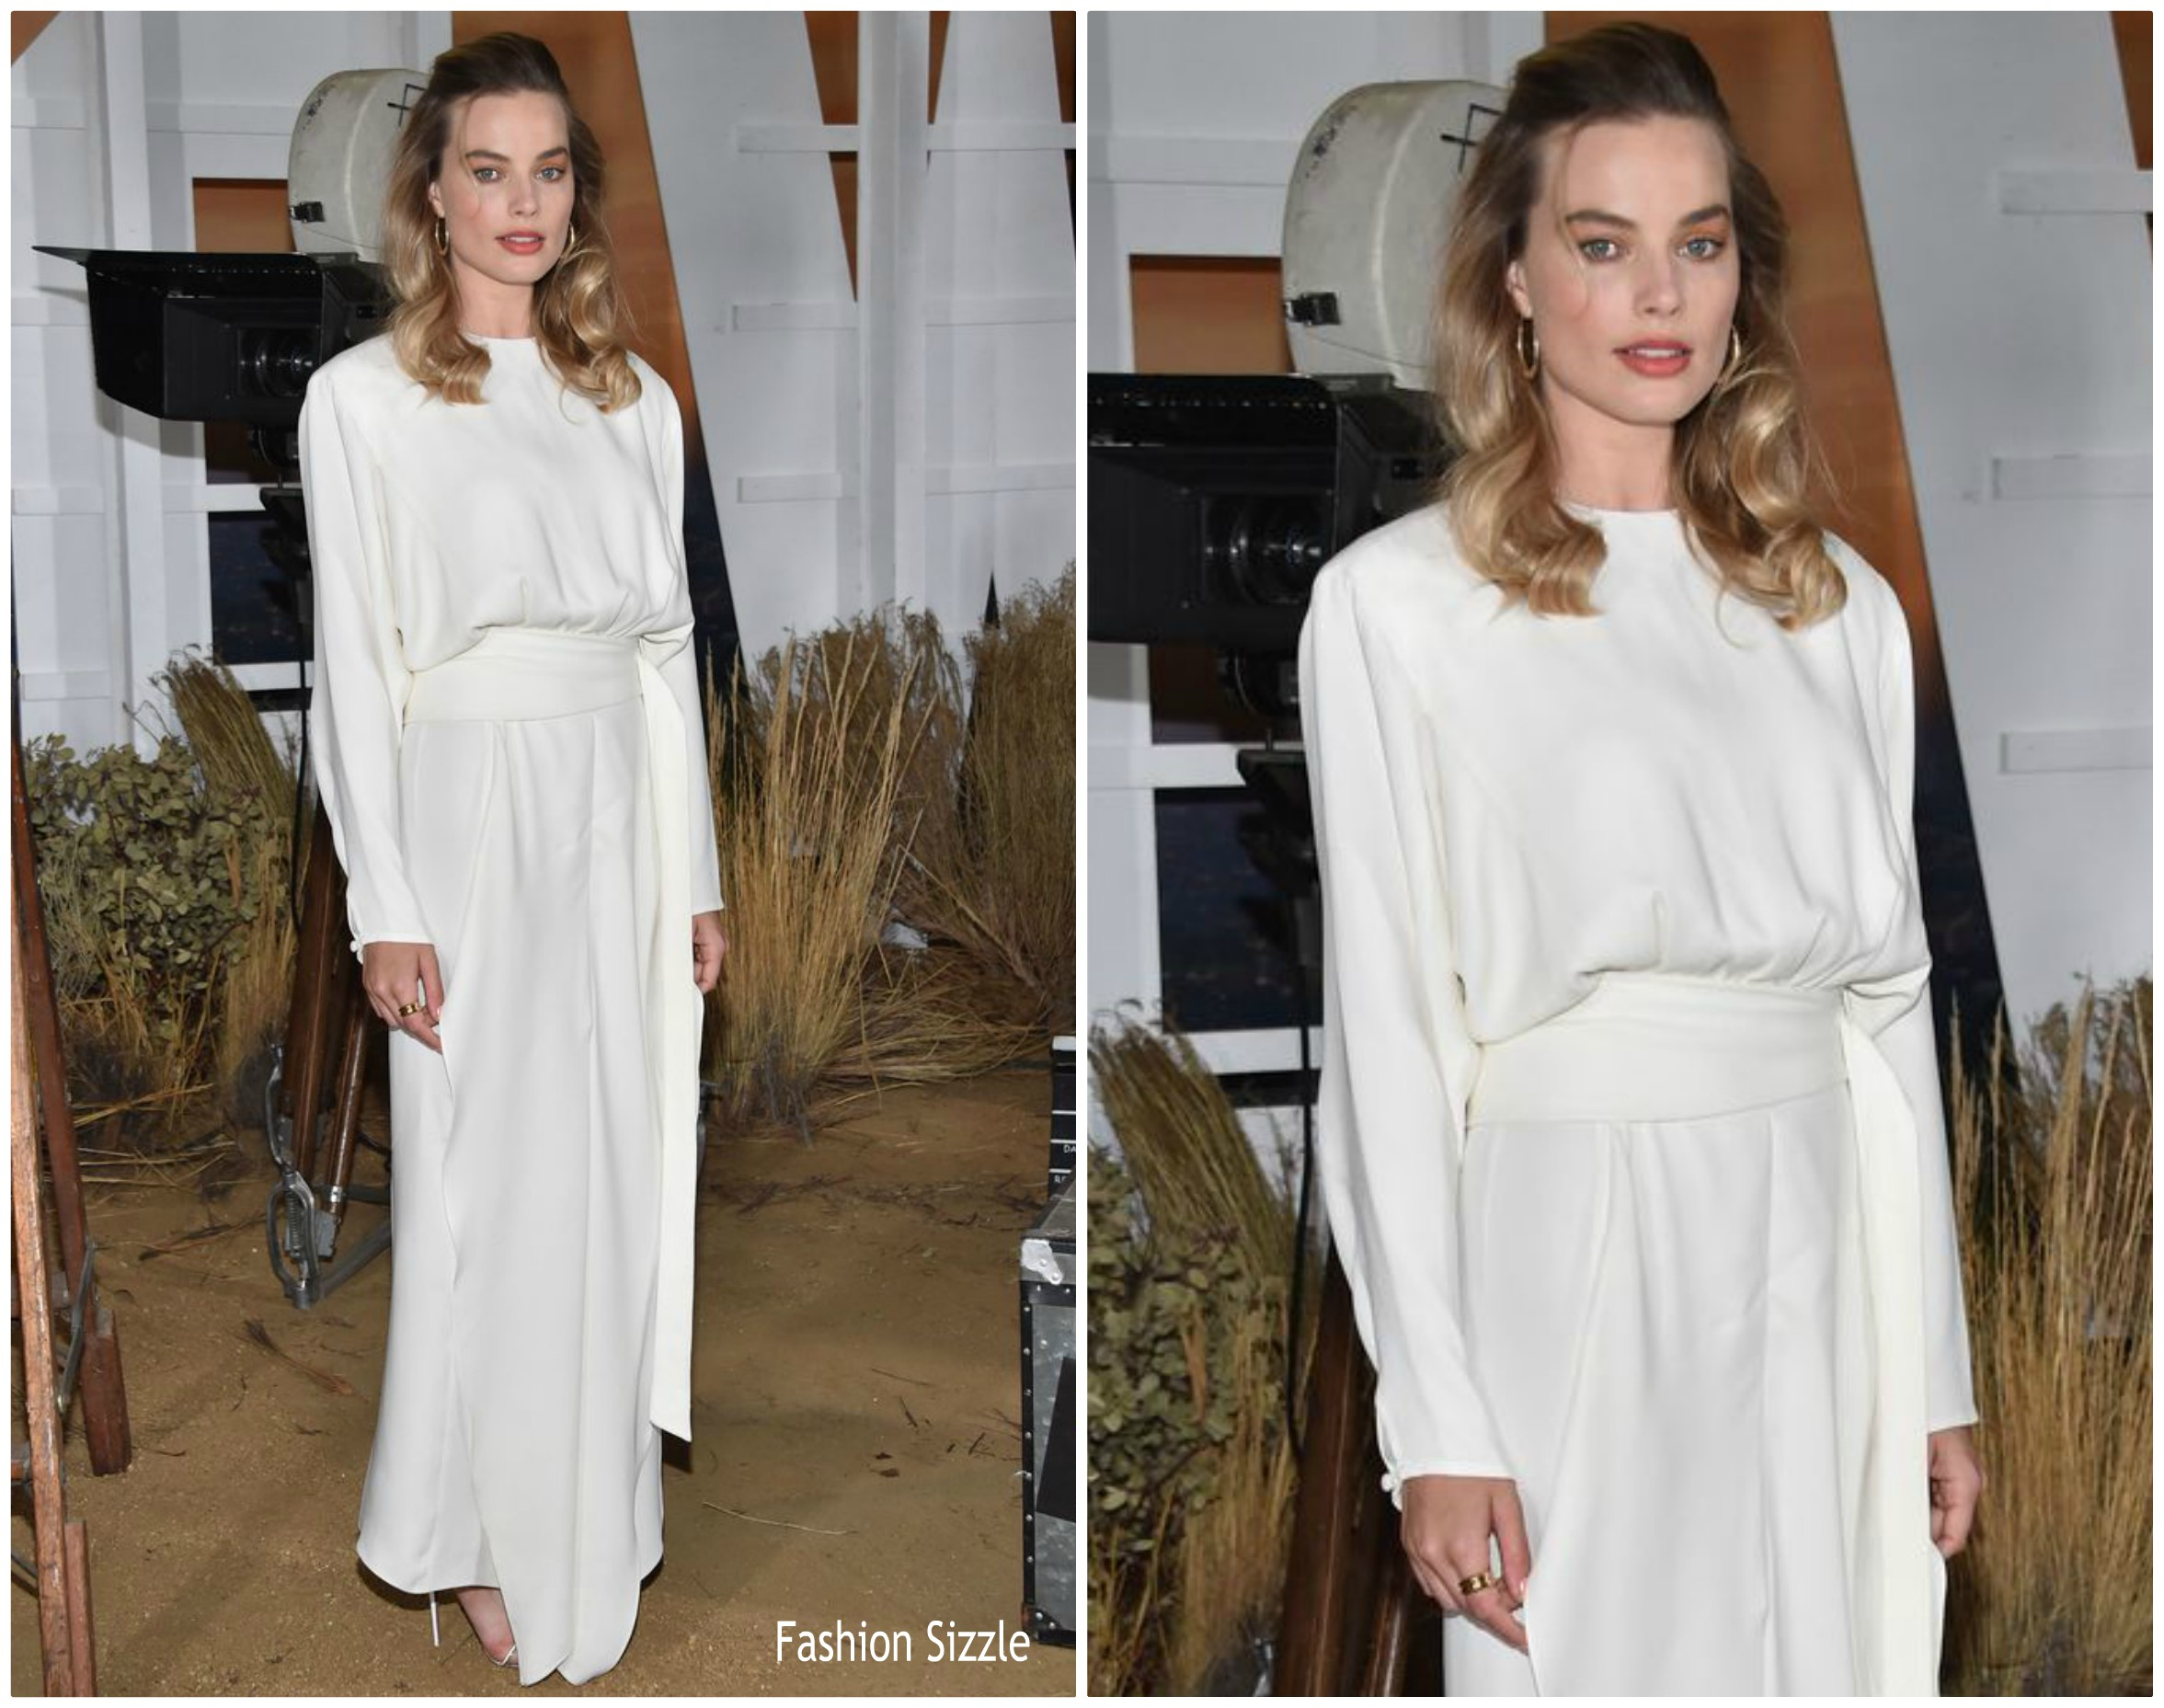 margot-robbie-in-derek-lam-once-upon-a-time-in-hollywood-la-photocall